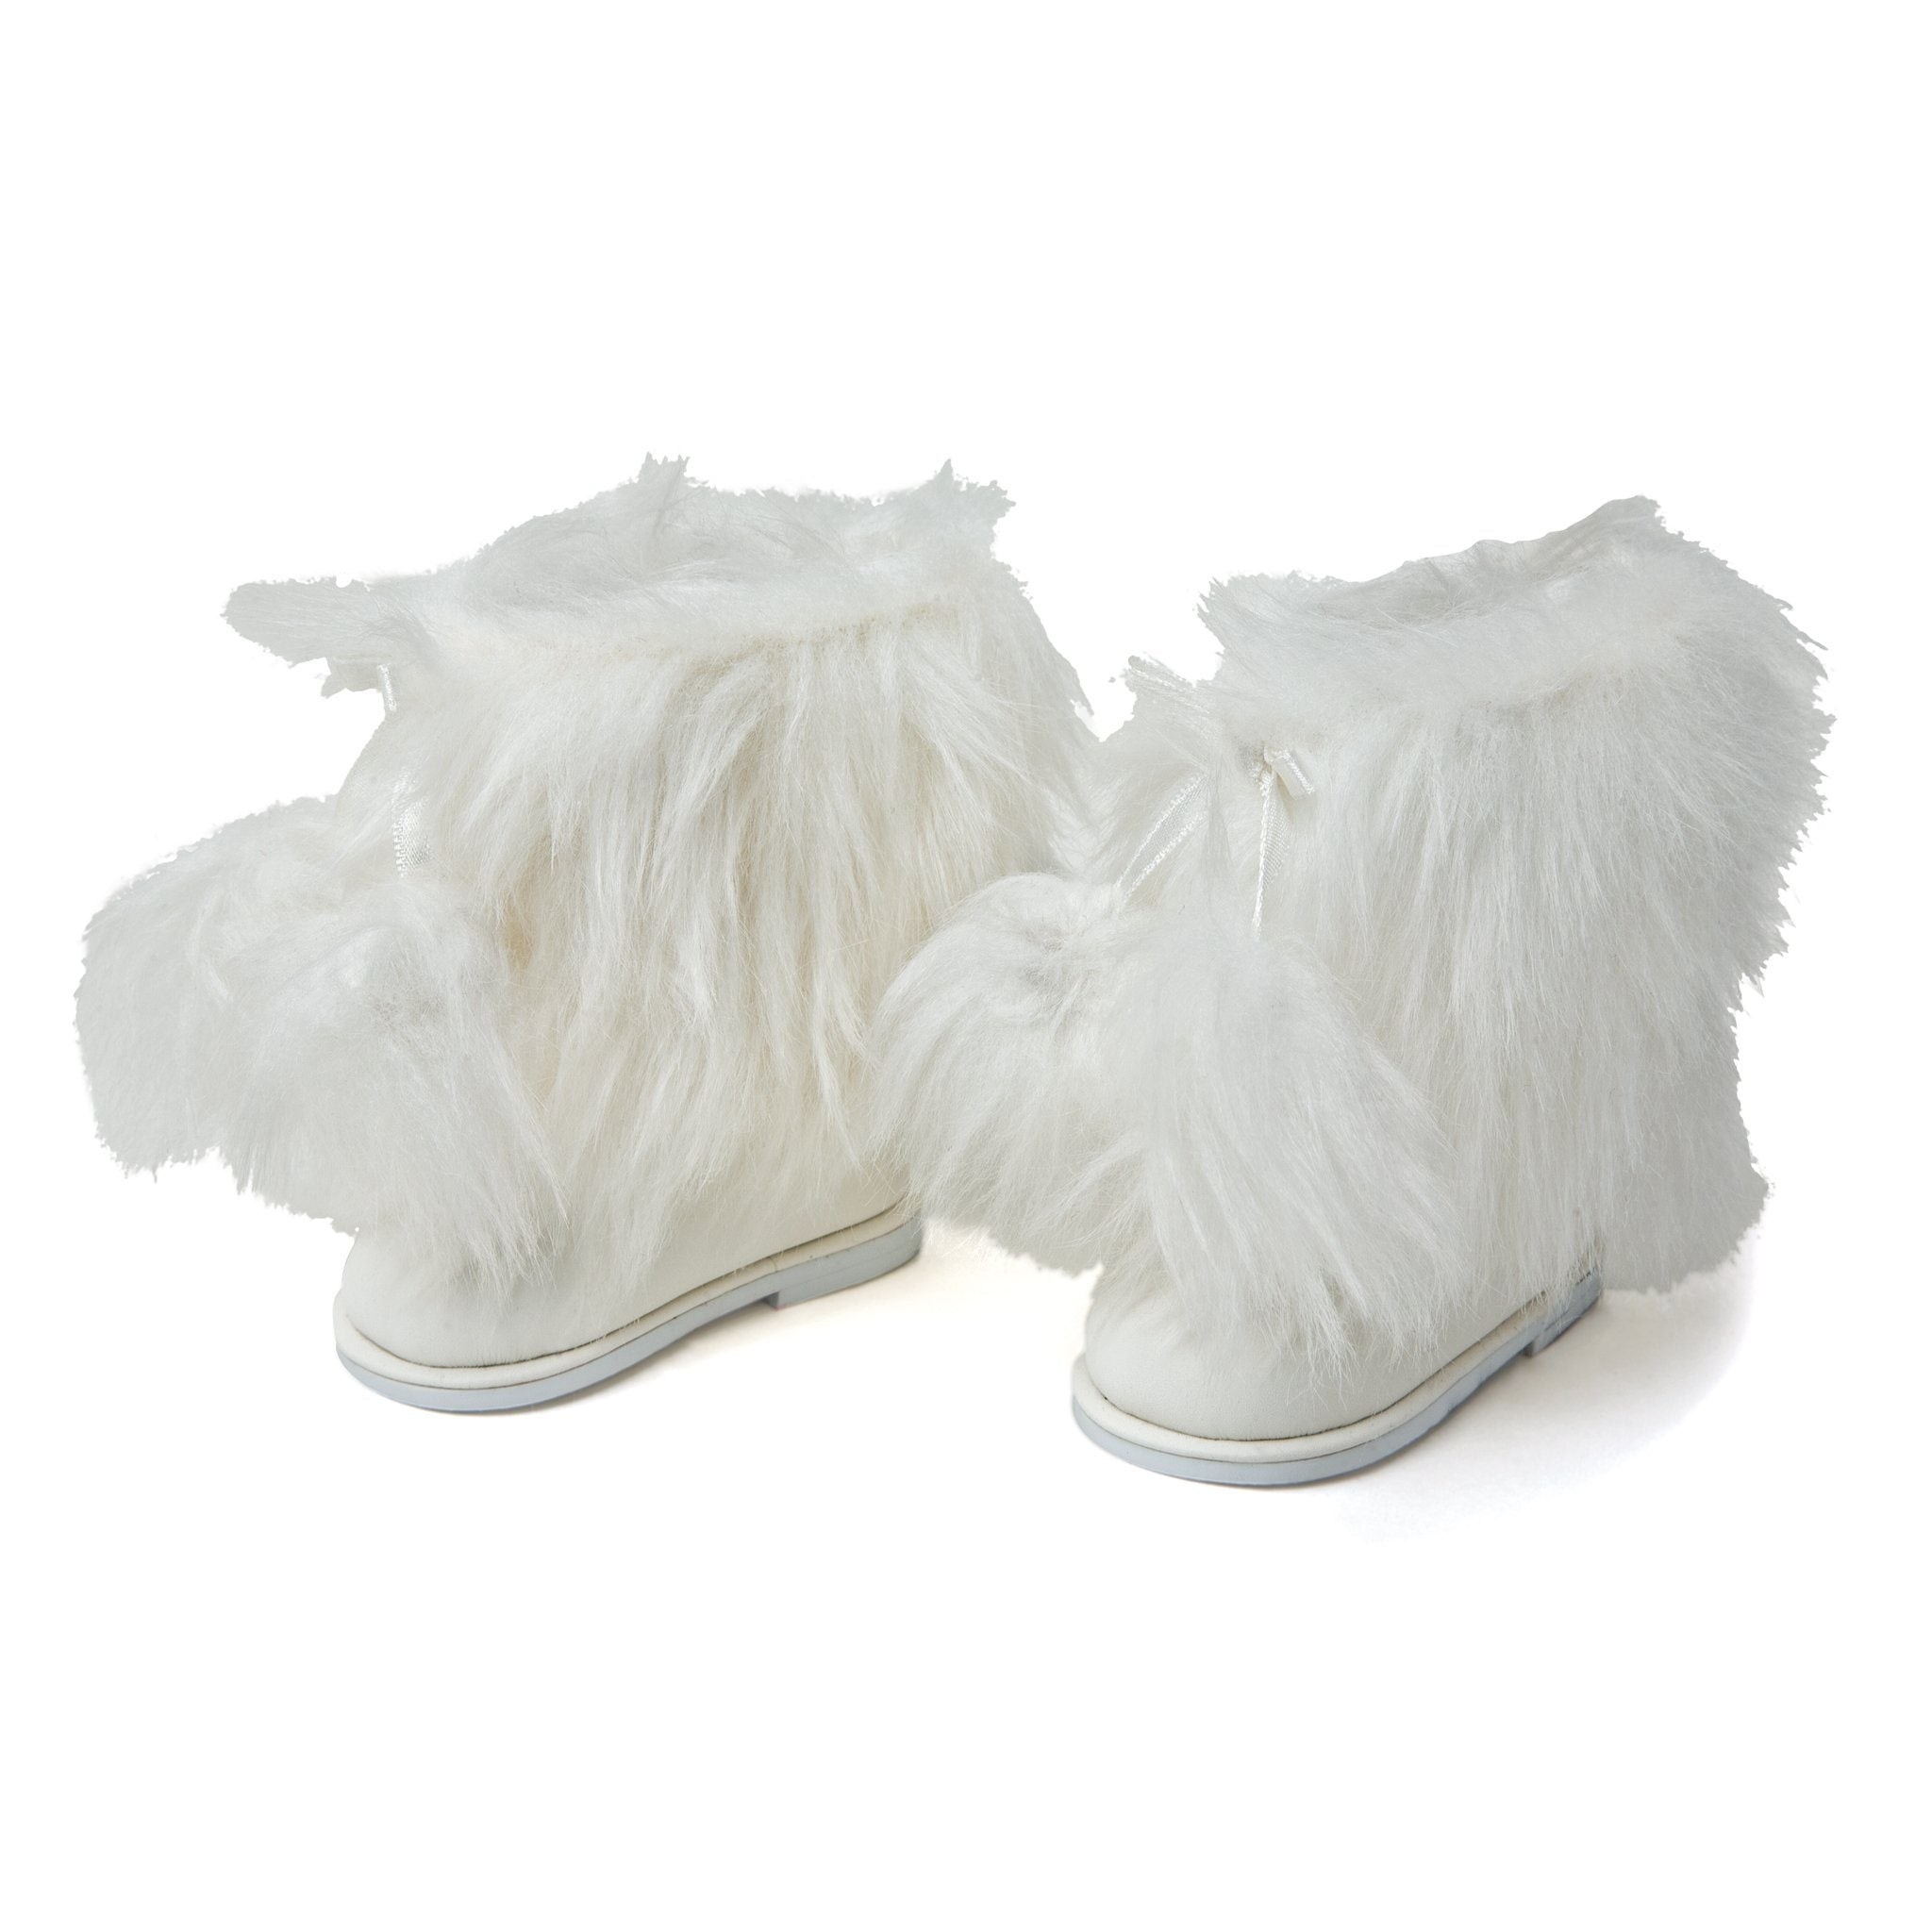 Maple Cabin Lodge fluffy white winter boots fit all 18 inch dolls.